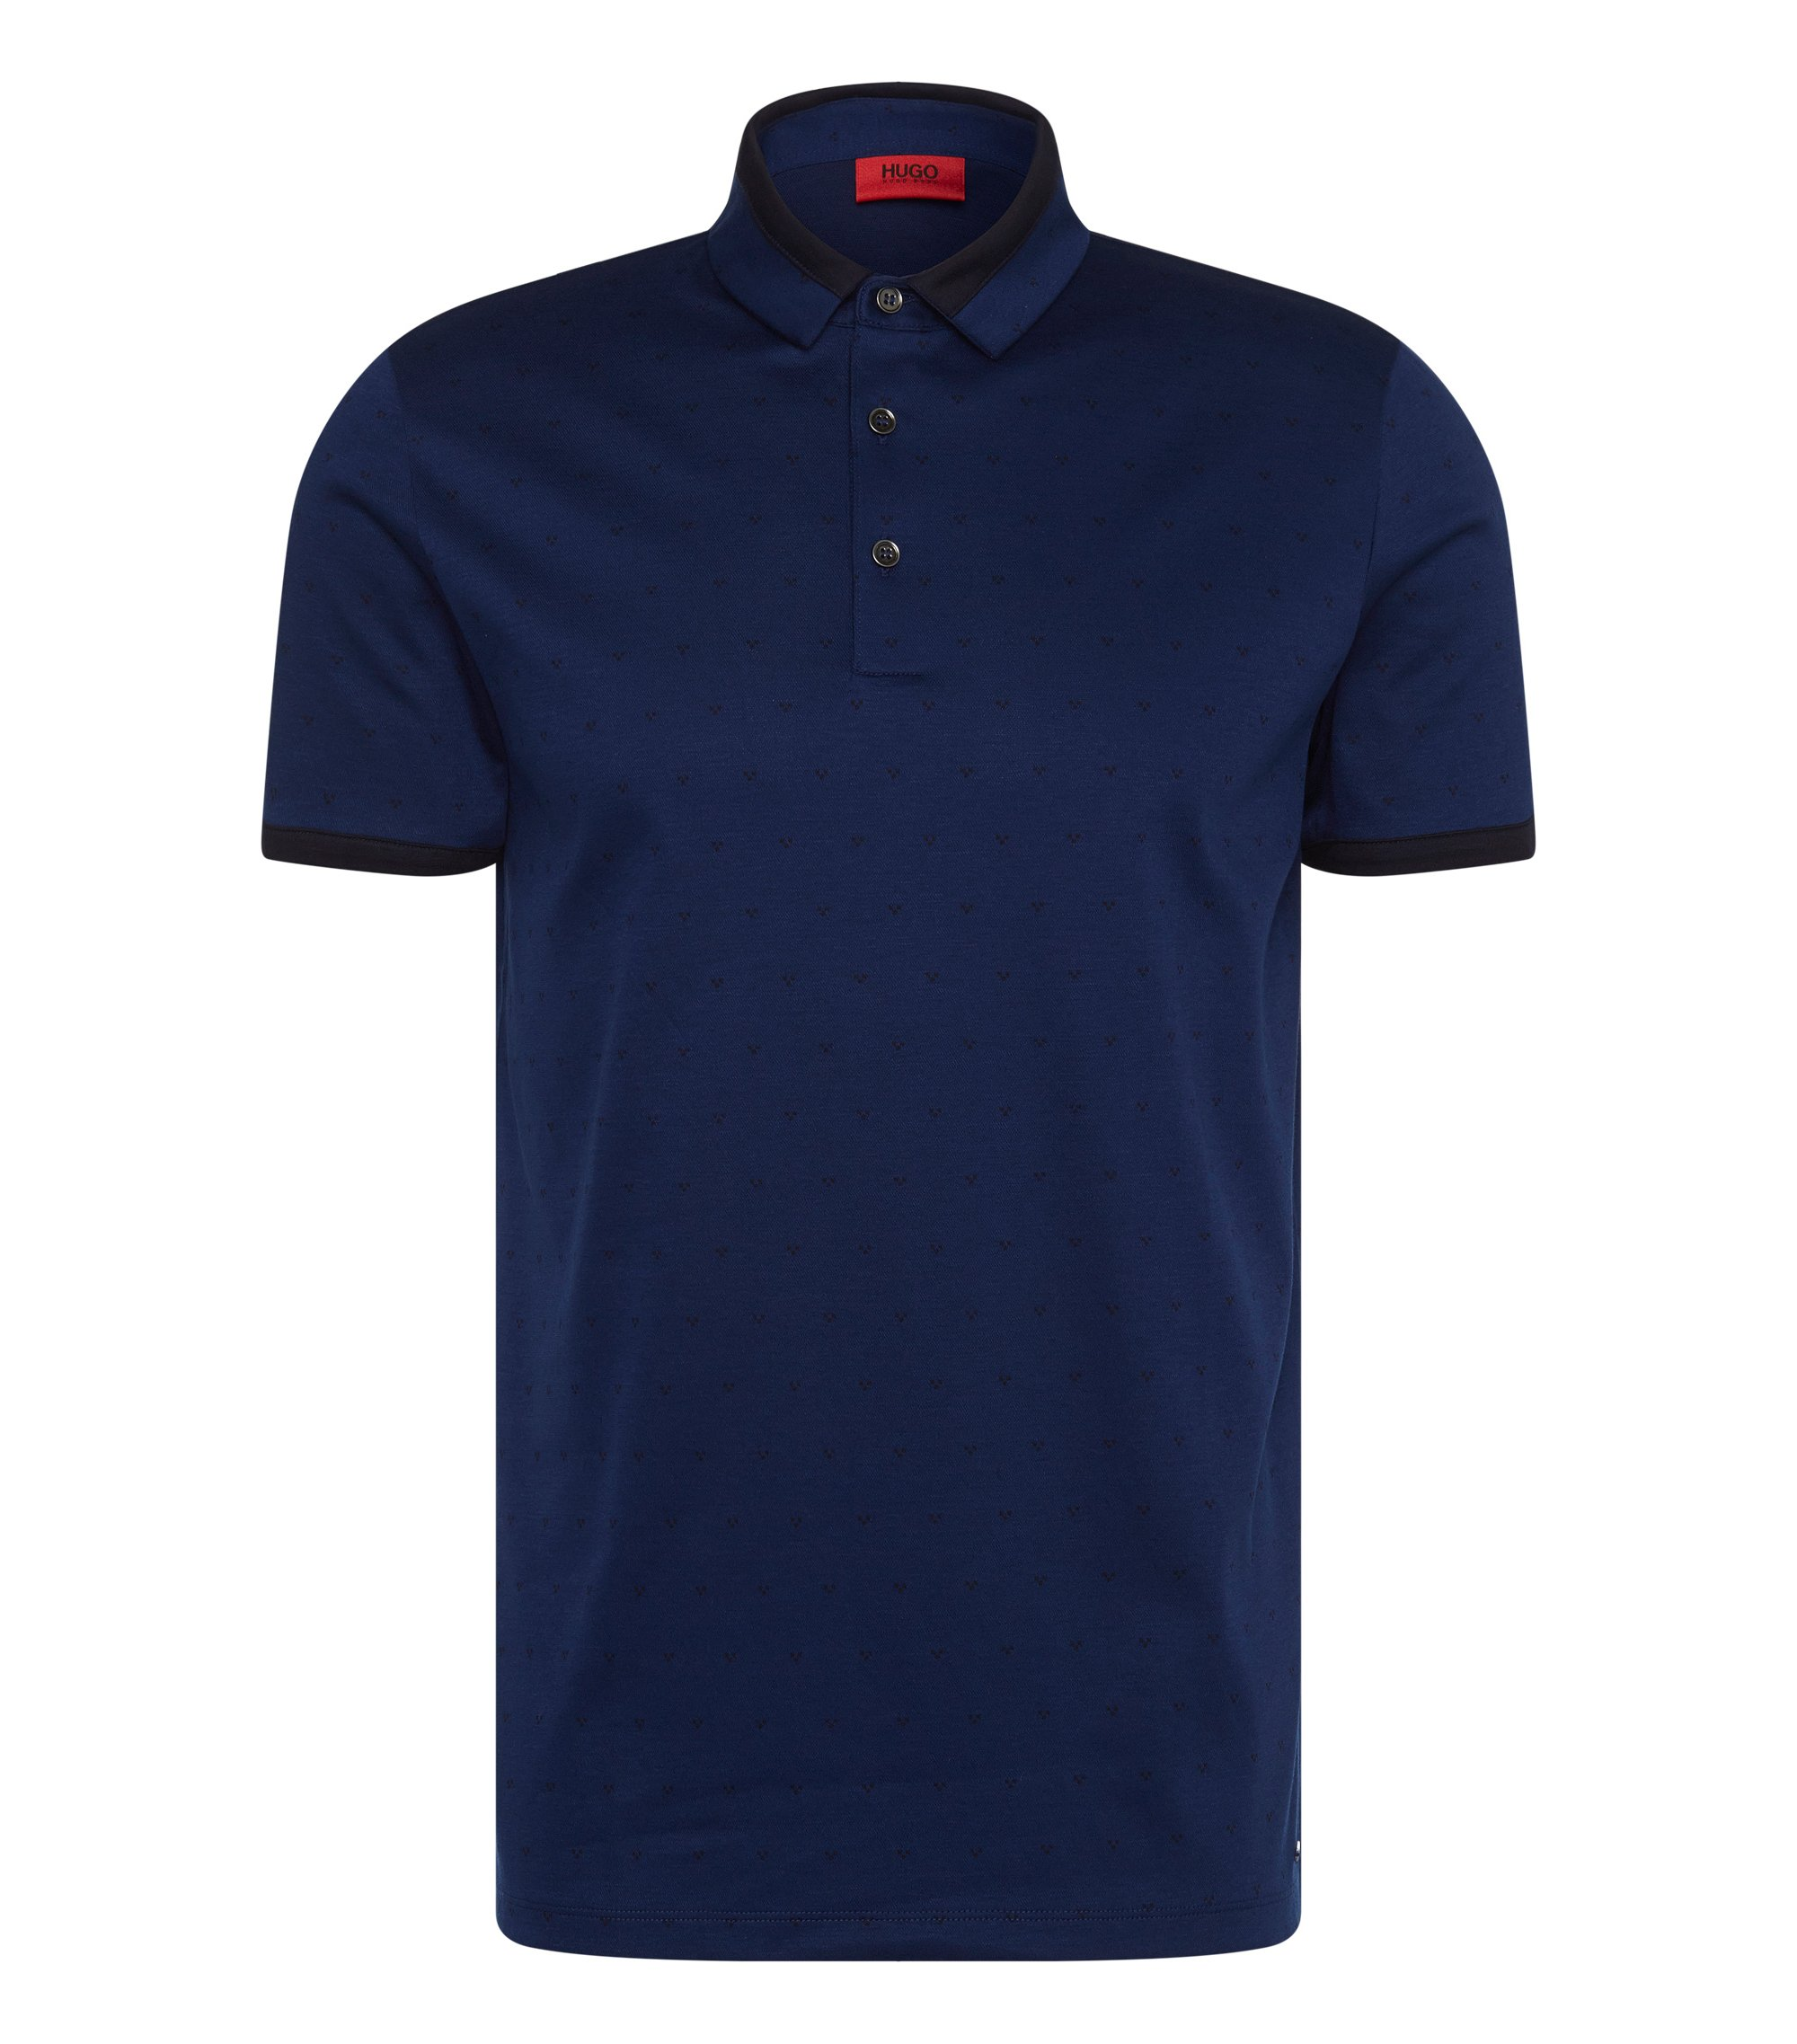 Cotton Jacquard Polo Shirt, Slim Fit | Denno, Blue